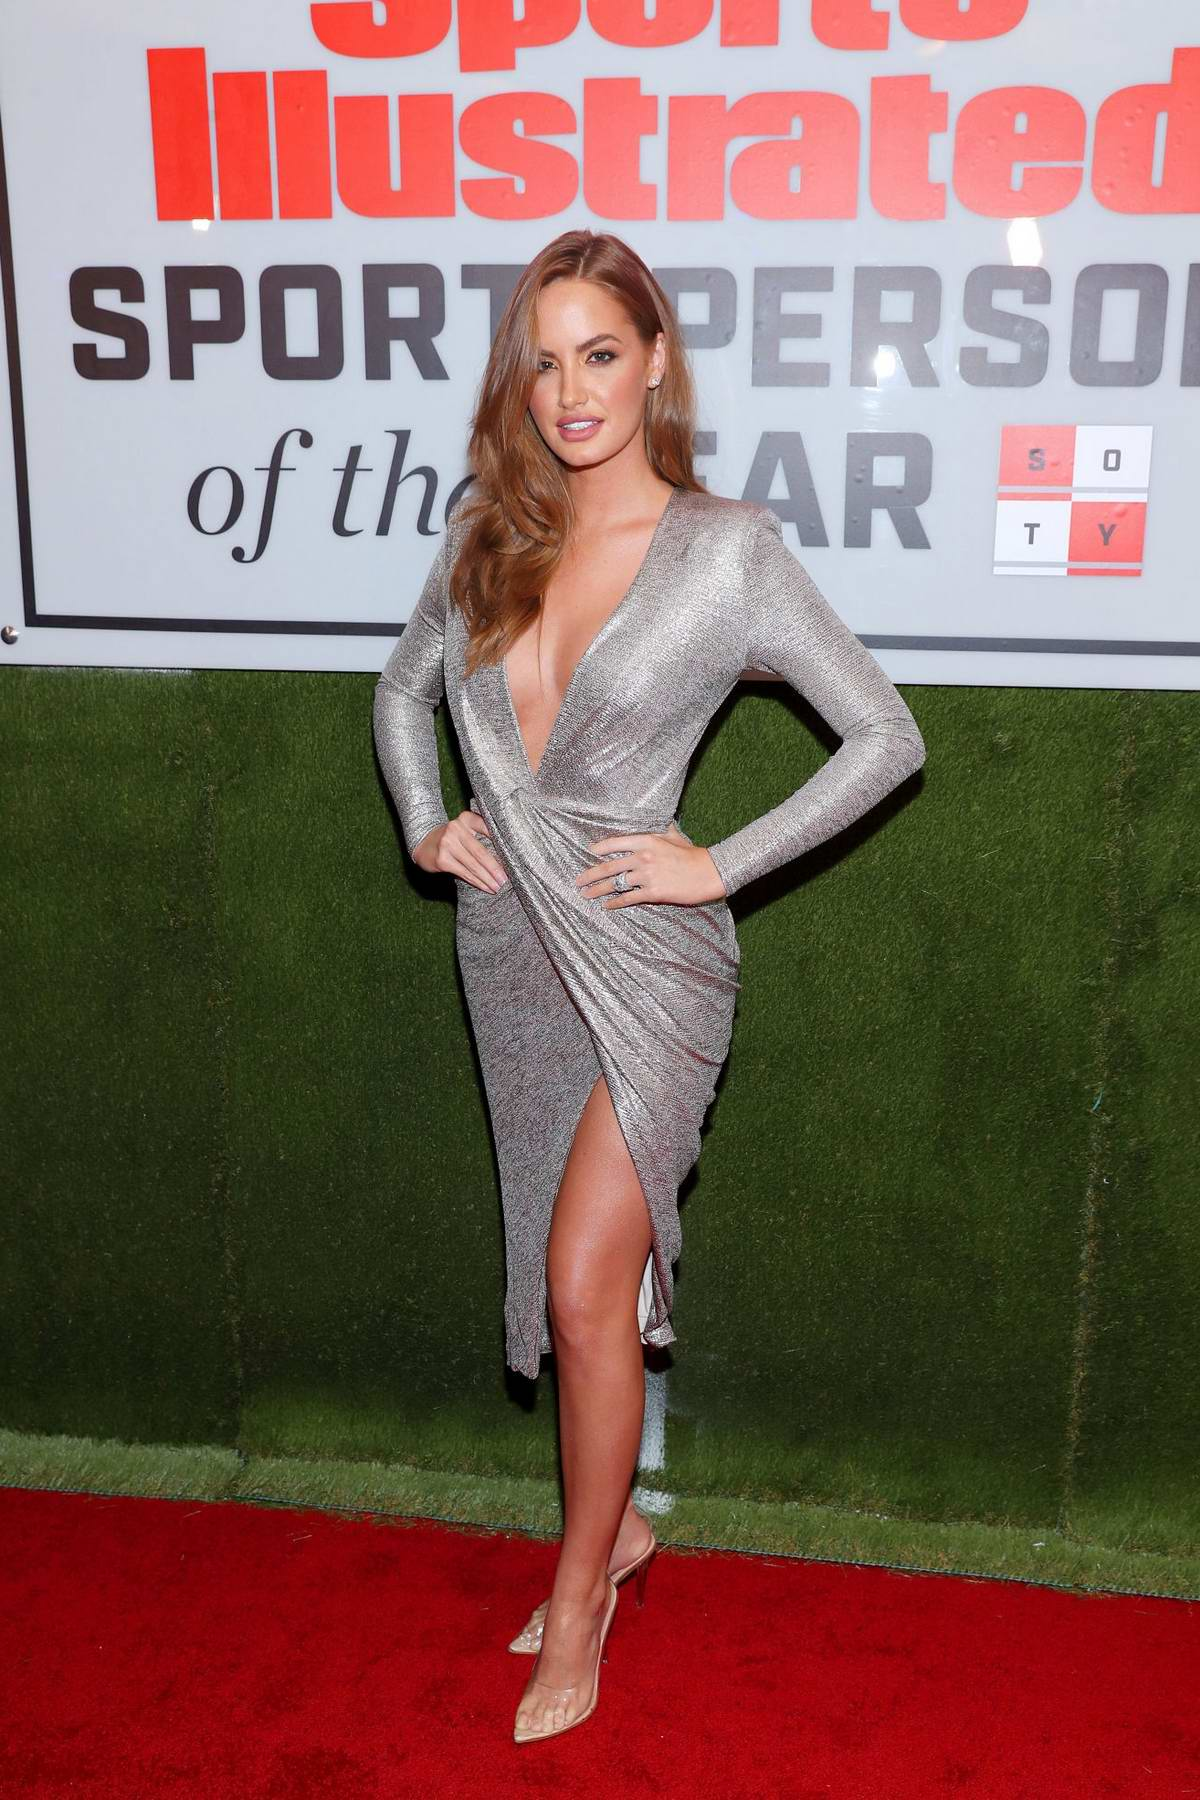 Haley Kalil attends the 2019 Sports Illustrated Sportsperson of the Year in New York City